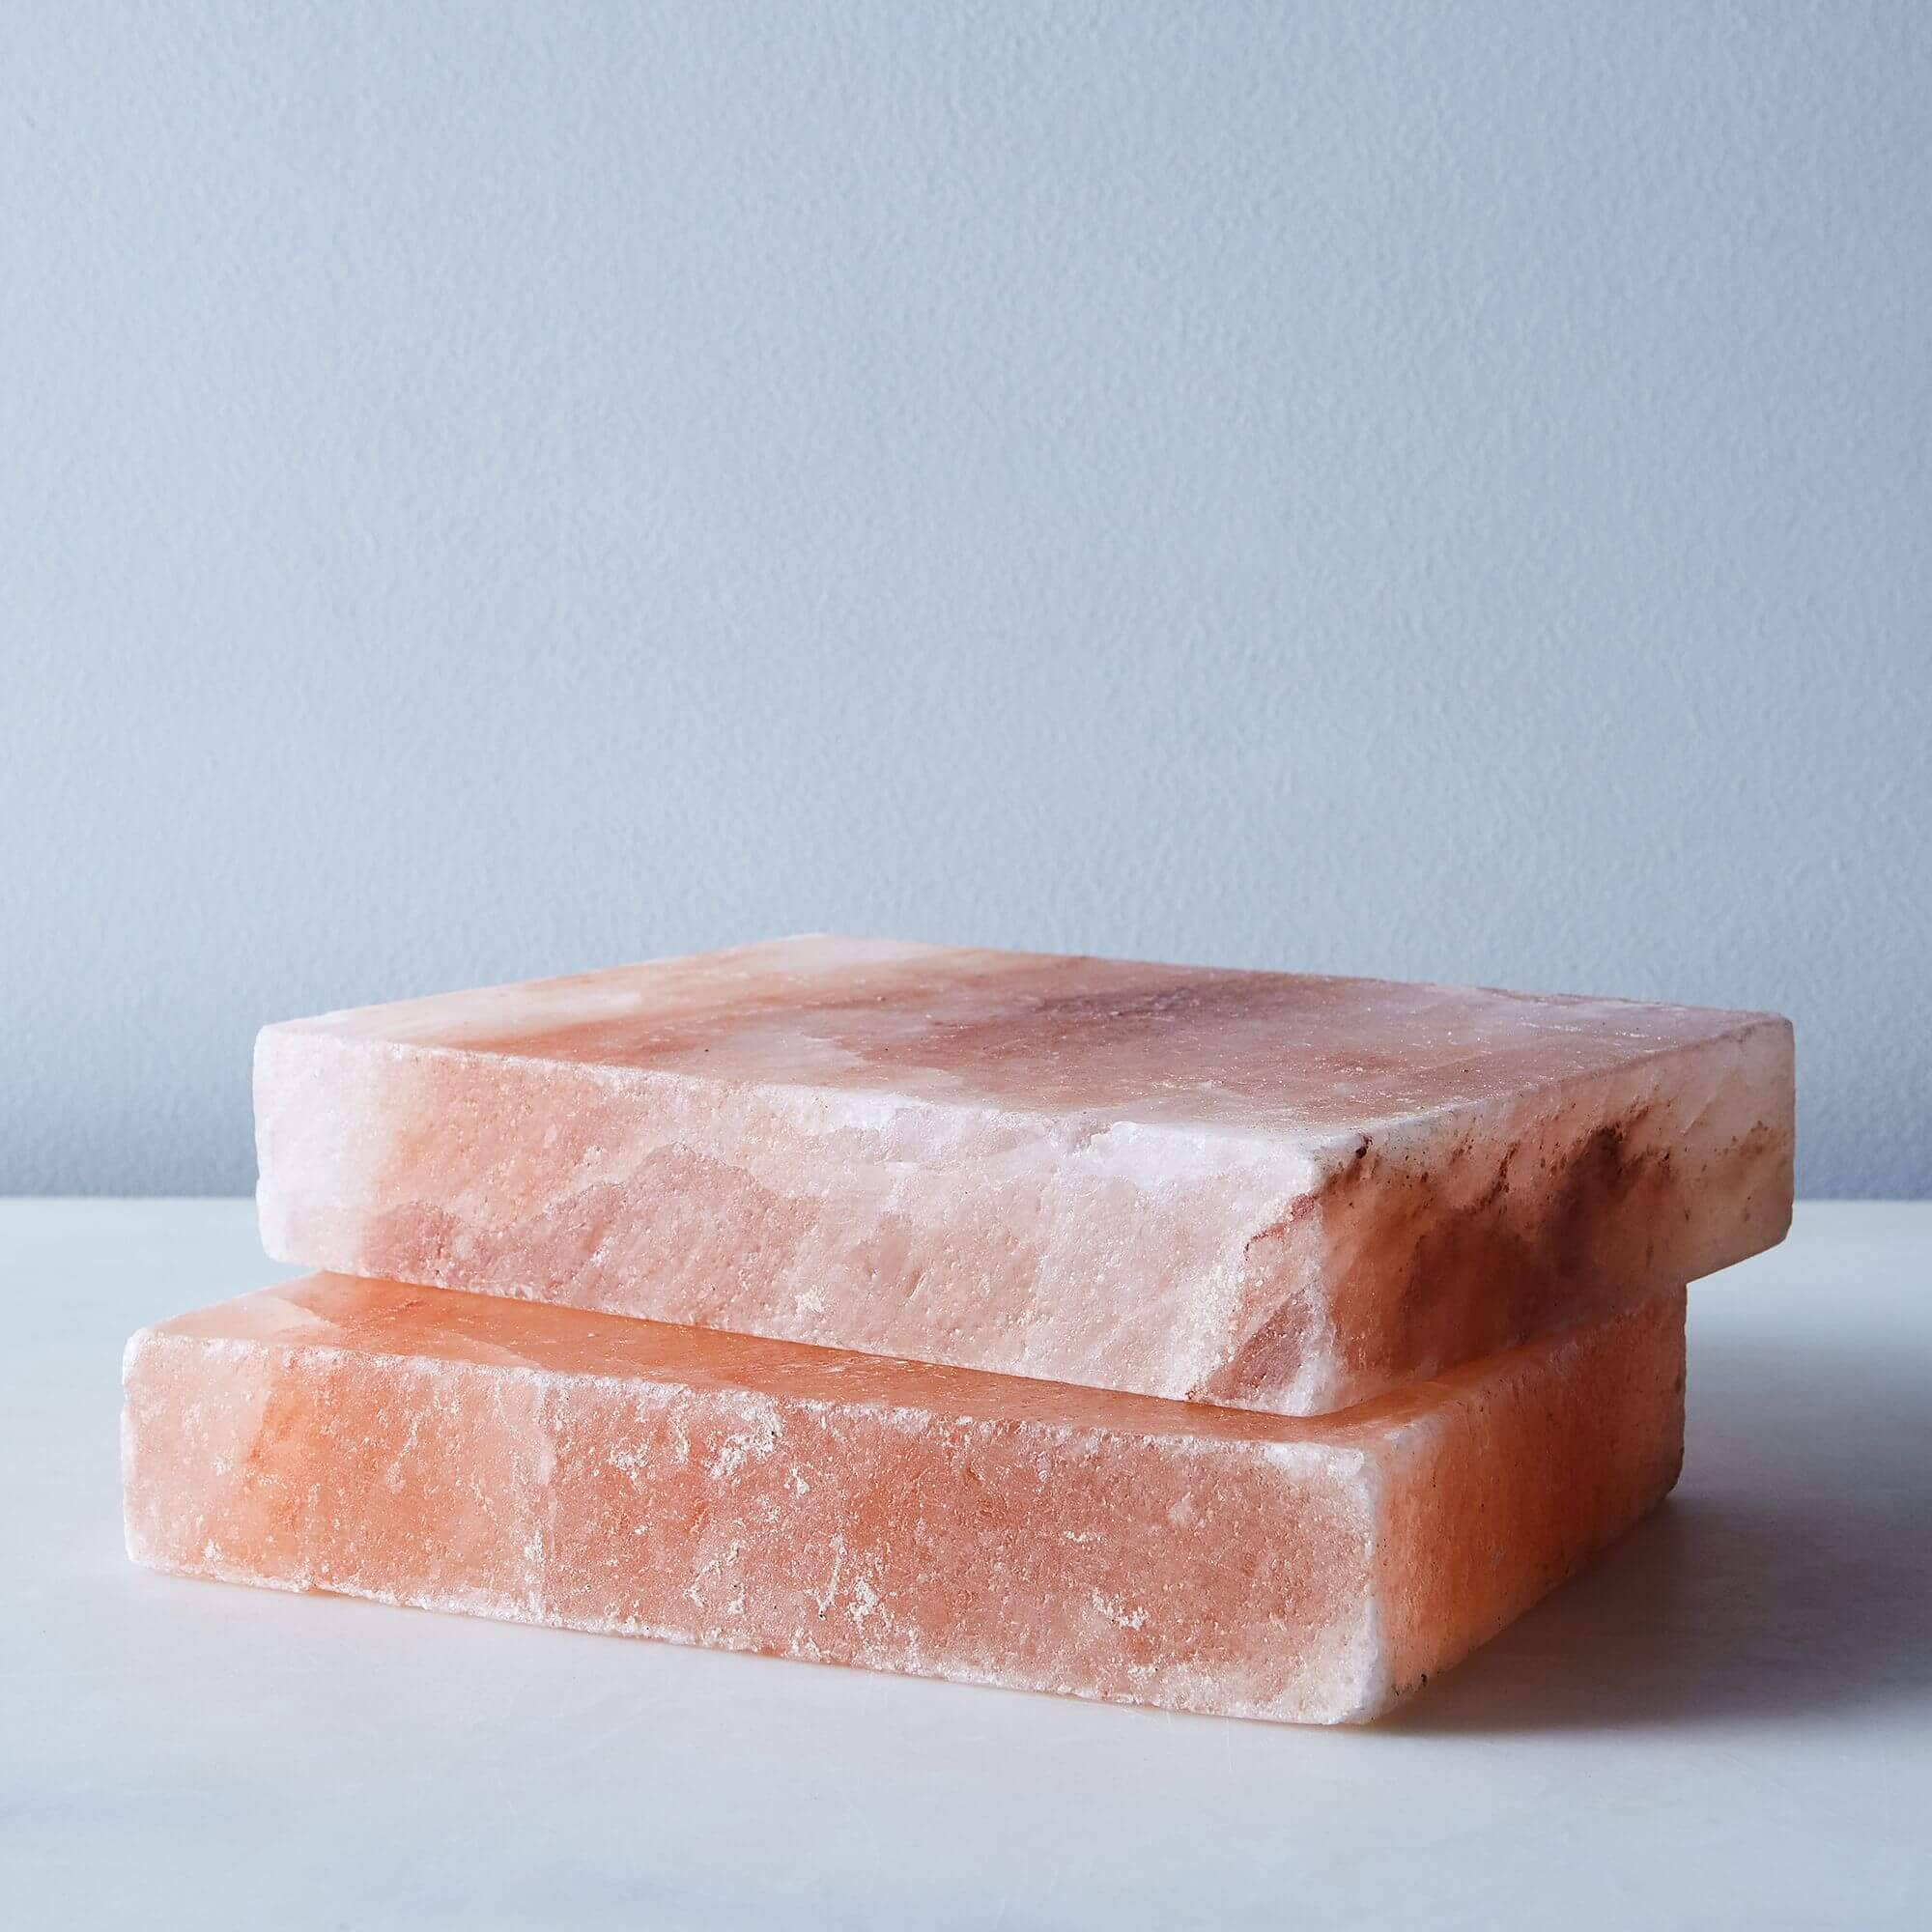 Himalayan Salt Blocks for Cooking